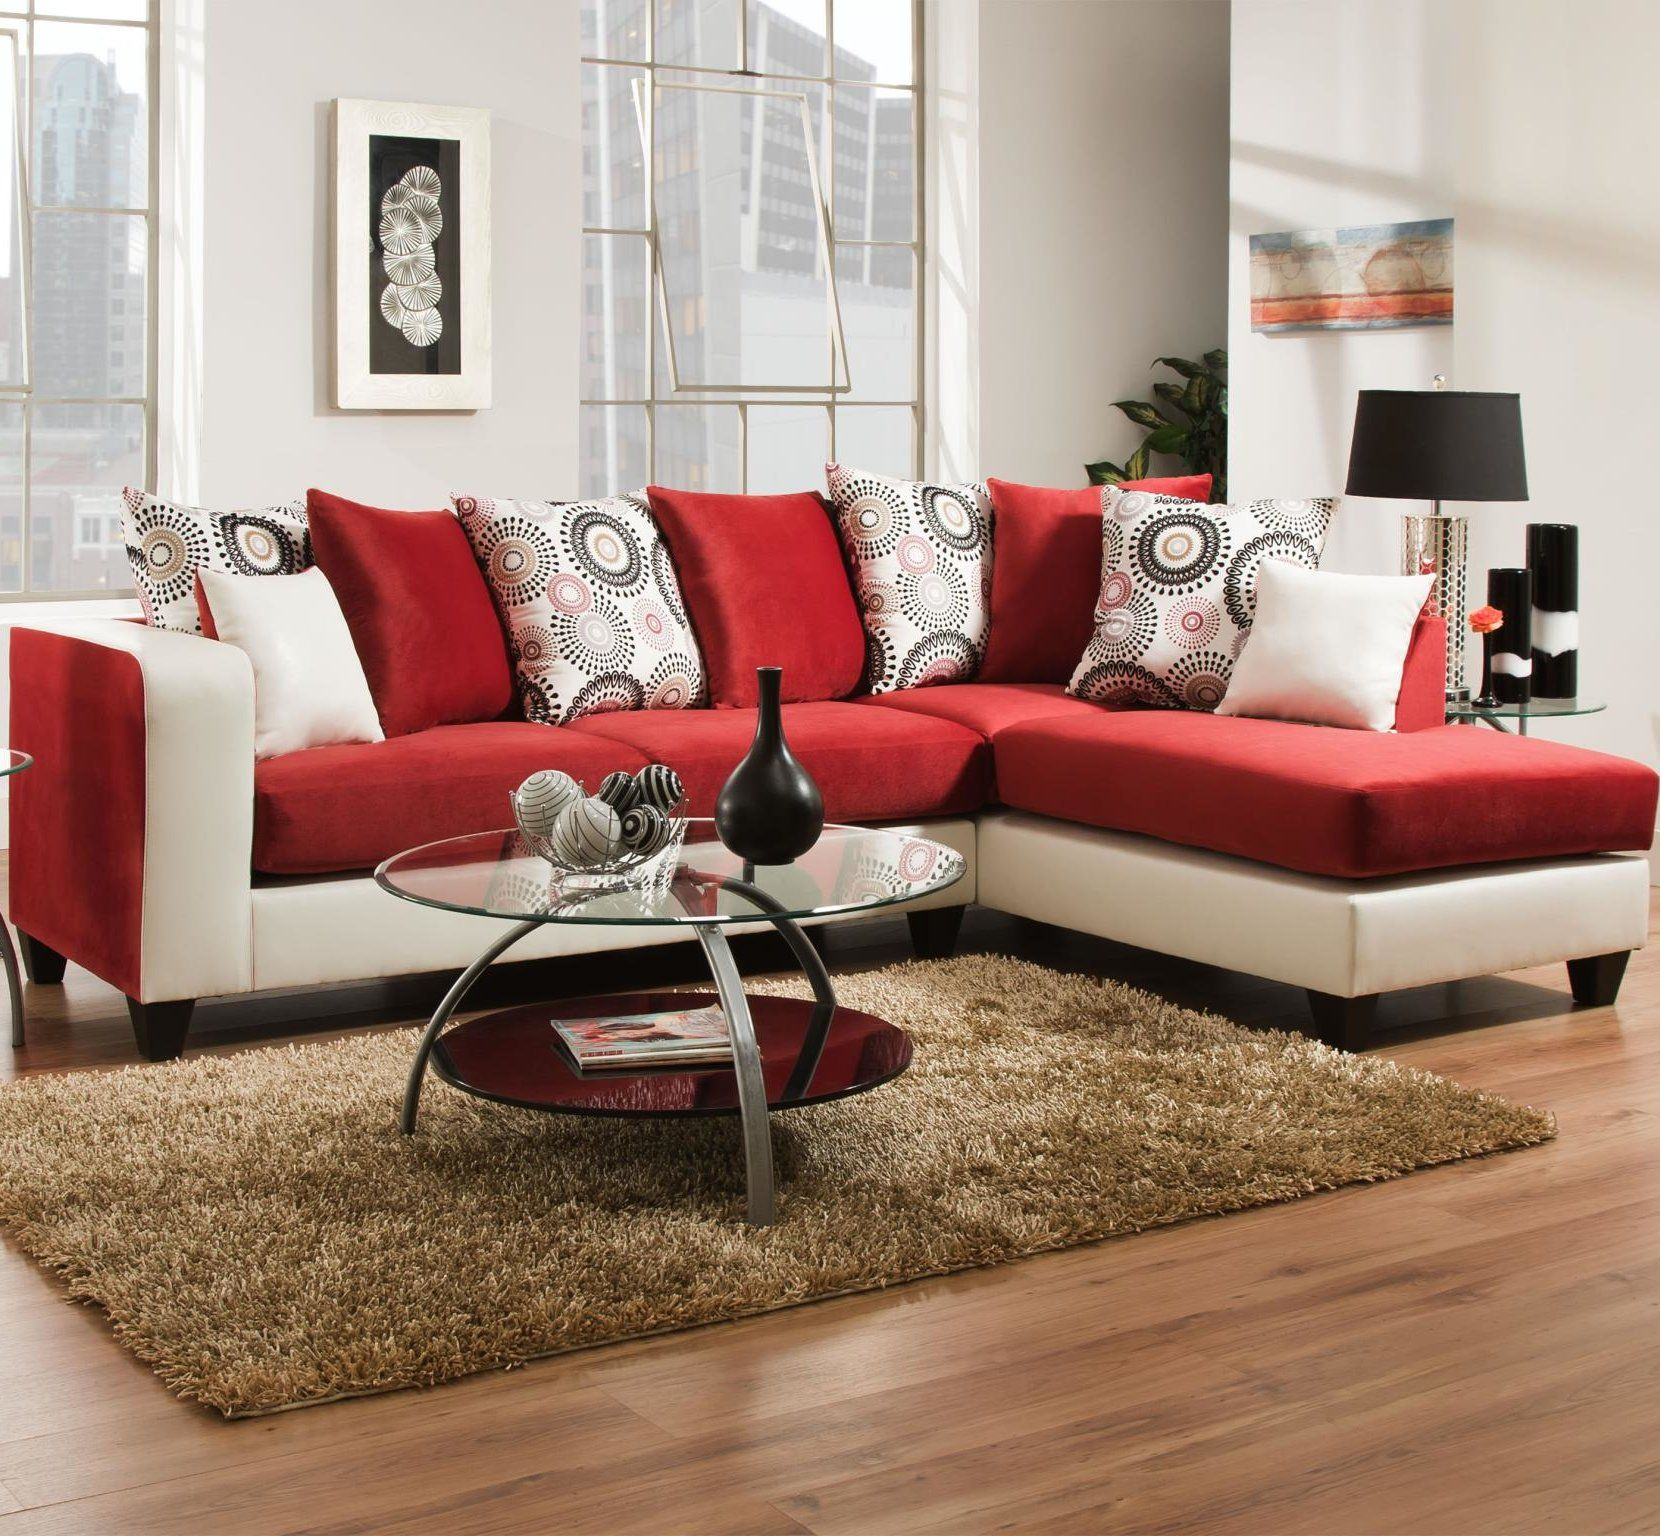 analese reversible chaise sectional products pinterest living rh pinterest com cheap sectional sofas in tampa fl sectional sofas for sale tampa fl